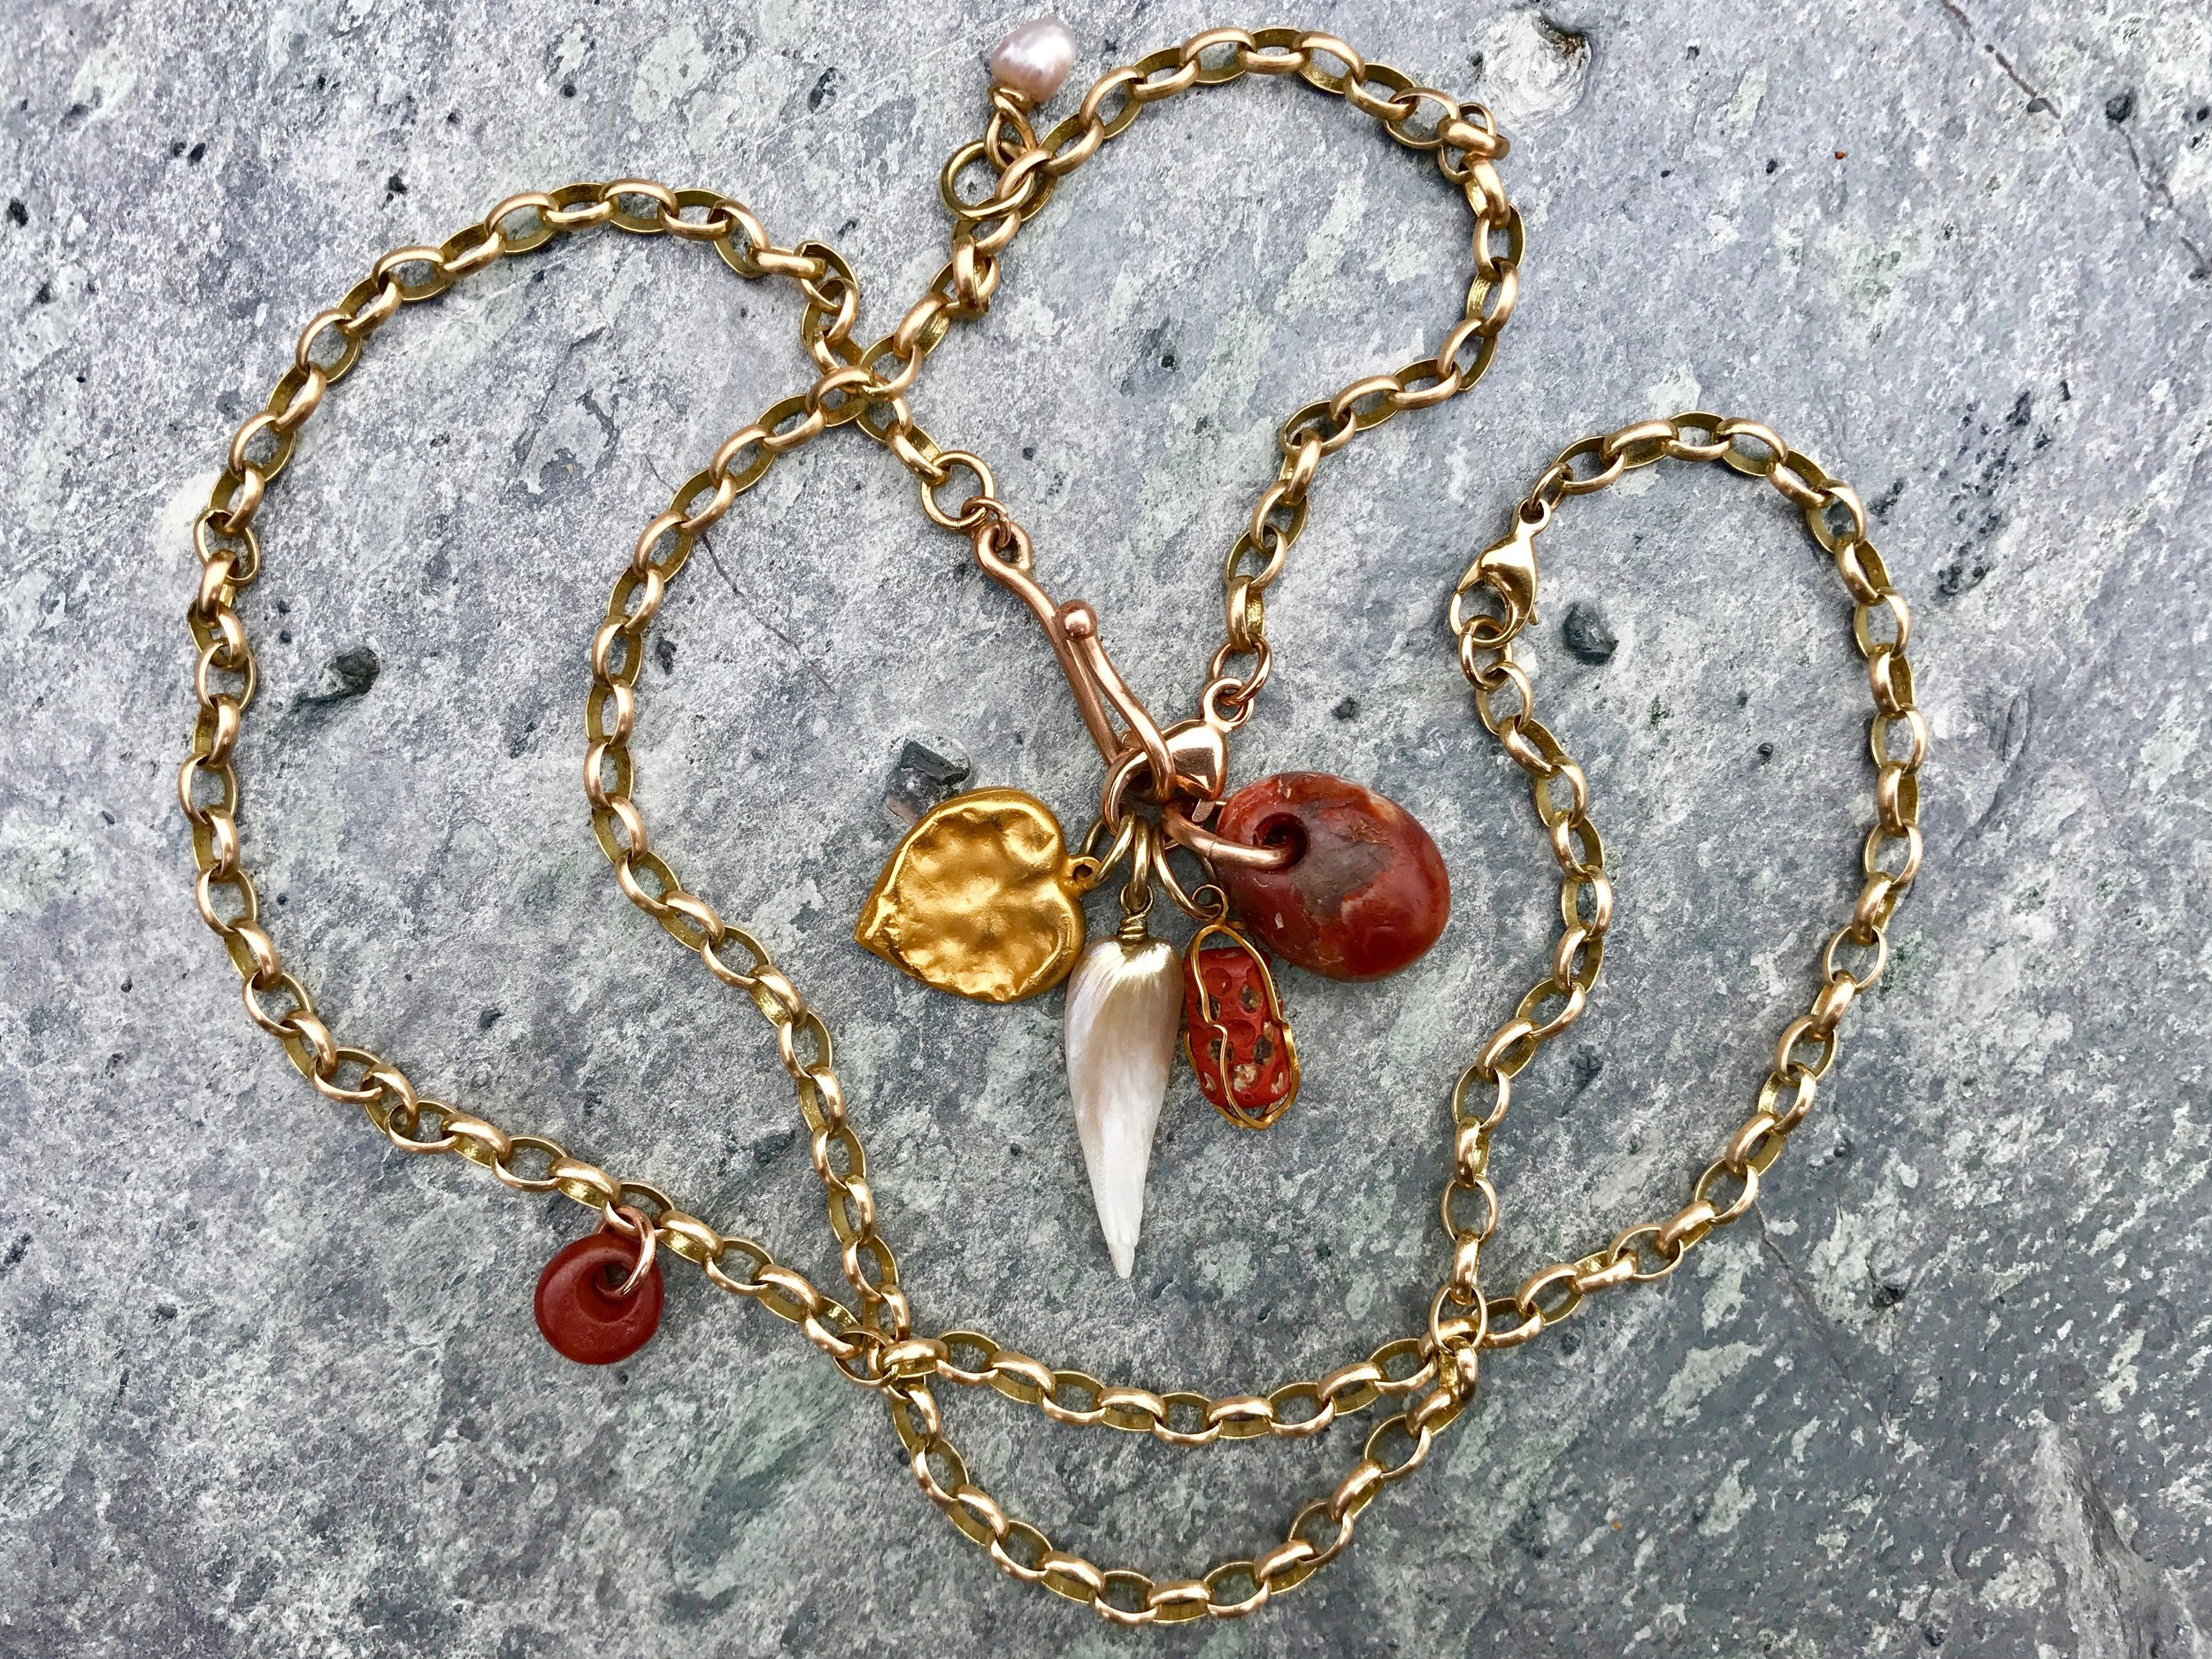 Belcher Chain, heart, pearl, ancient stone Necklace by Tara Turner .jpg